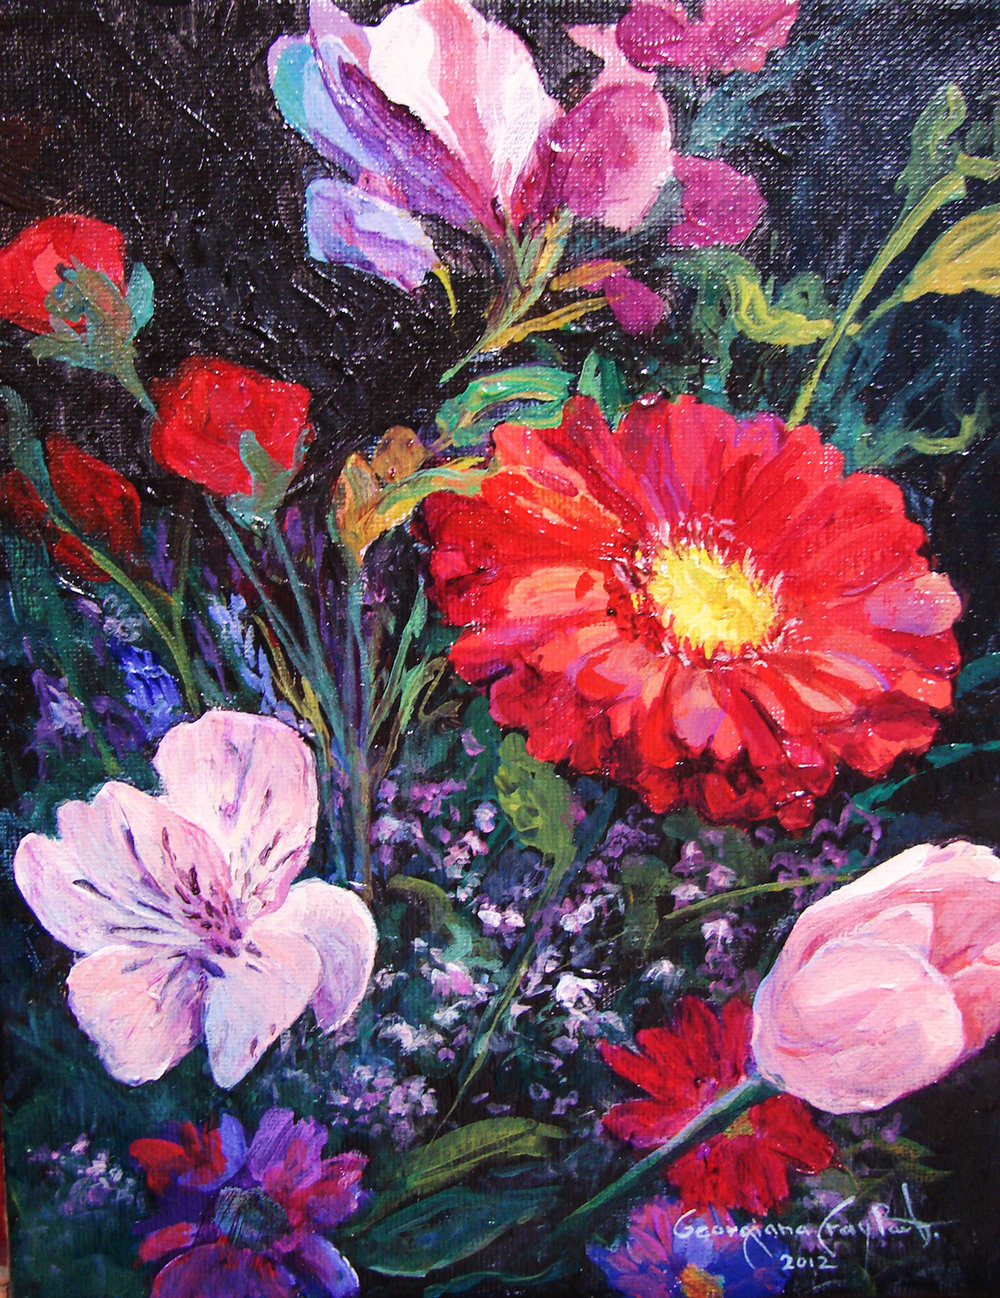 Mothers Day Flowers #6 _acrylic_8x10.jpg..jpg